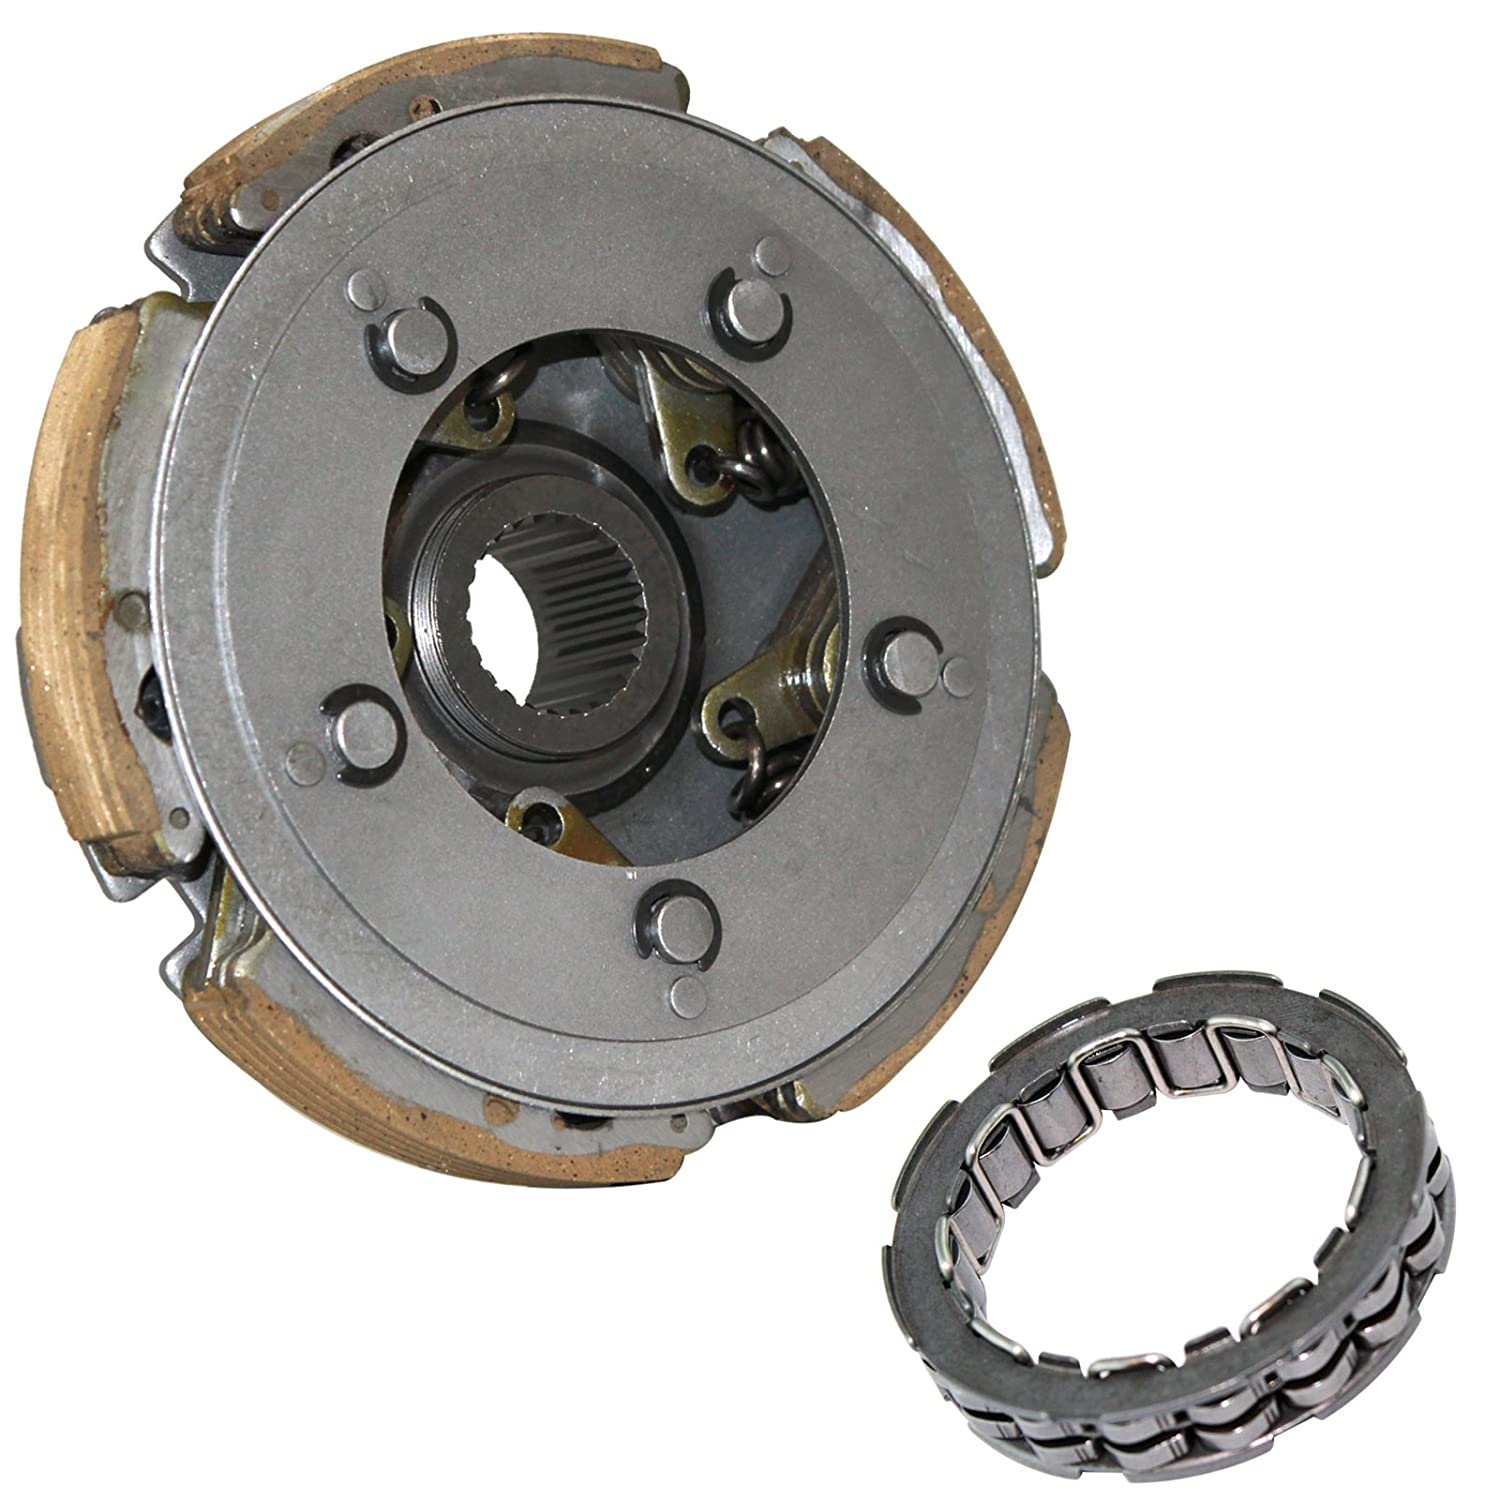 CALTRIC CLUTCH CENTRIFUGAL CARRIER & BEARING Fits HONDA TRX300FW TRX-300FW FOURTRAX 300 4X4 1988 1990-2000